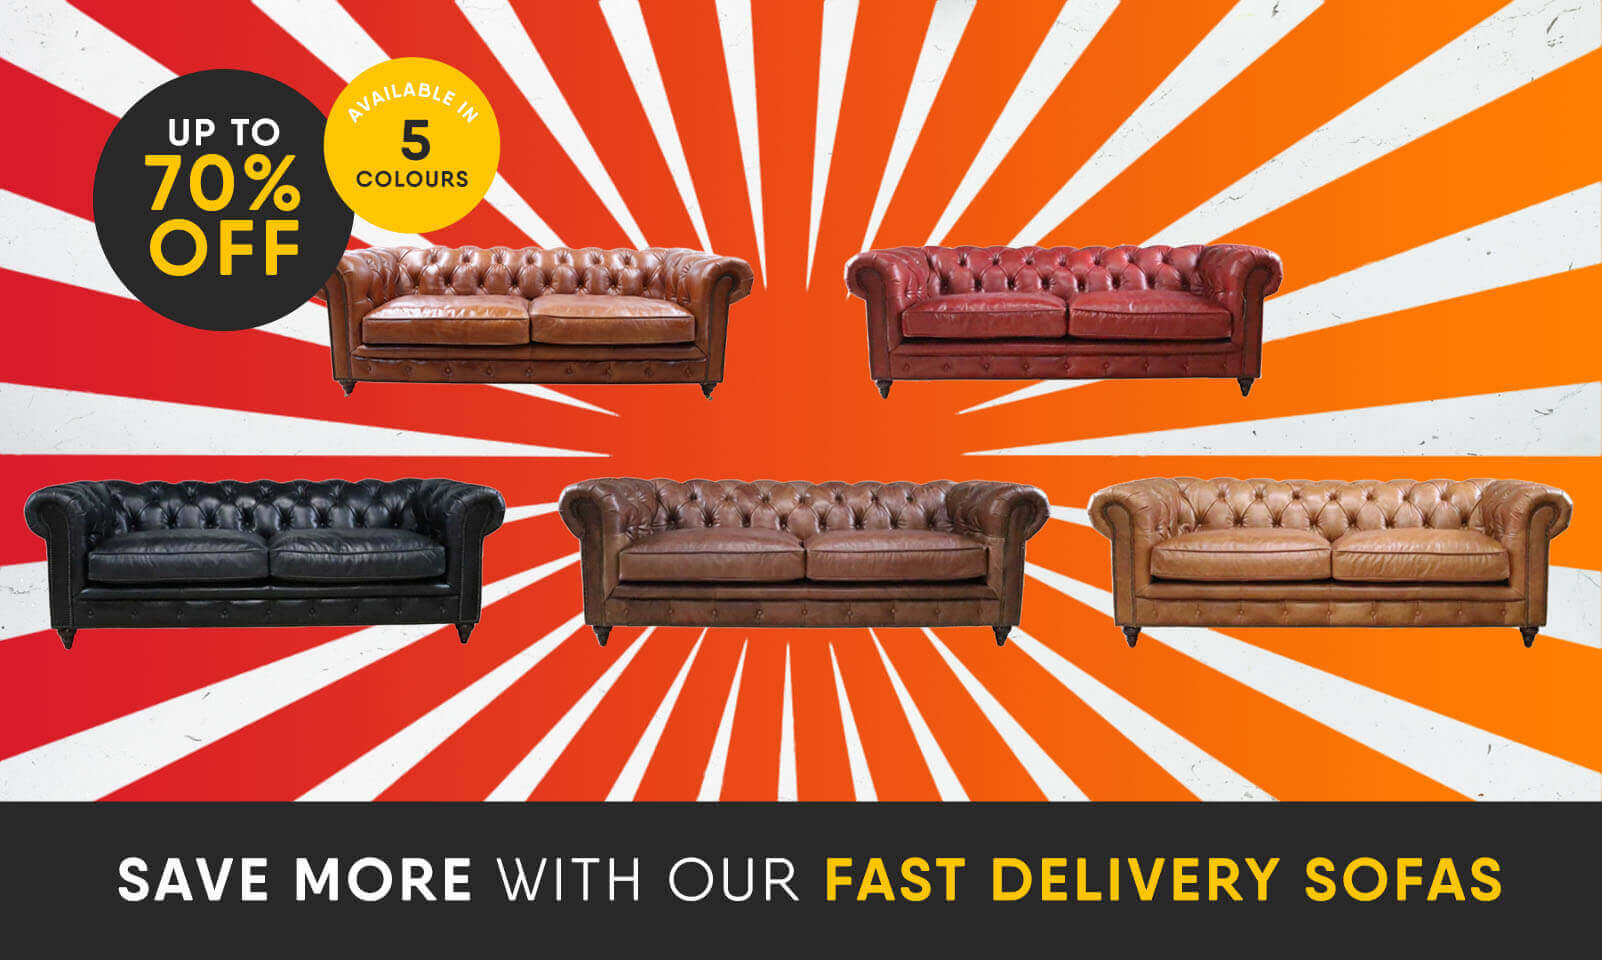 Fast Delivery Sofas & Chairs - In Stock Products